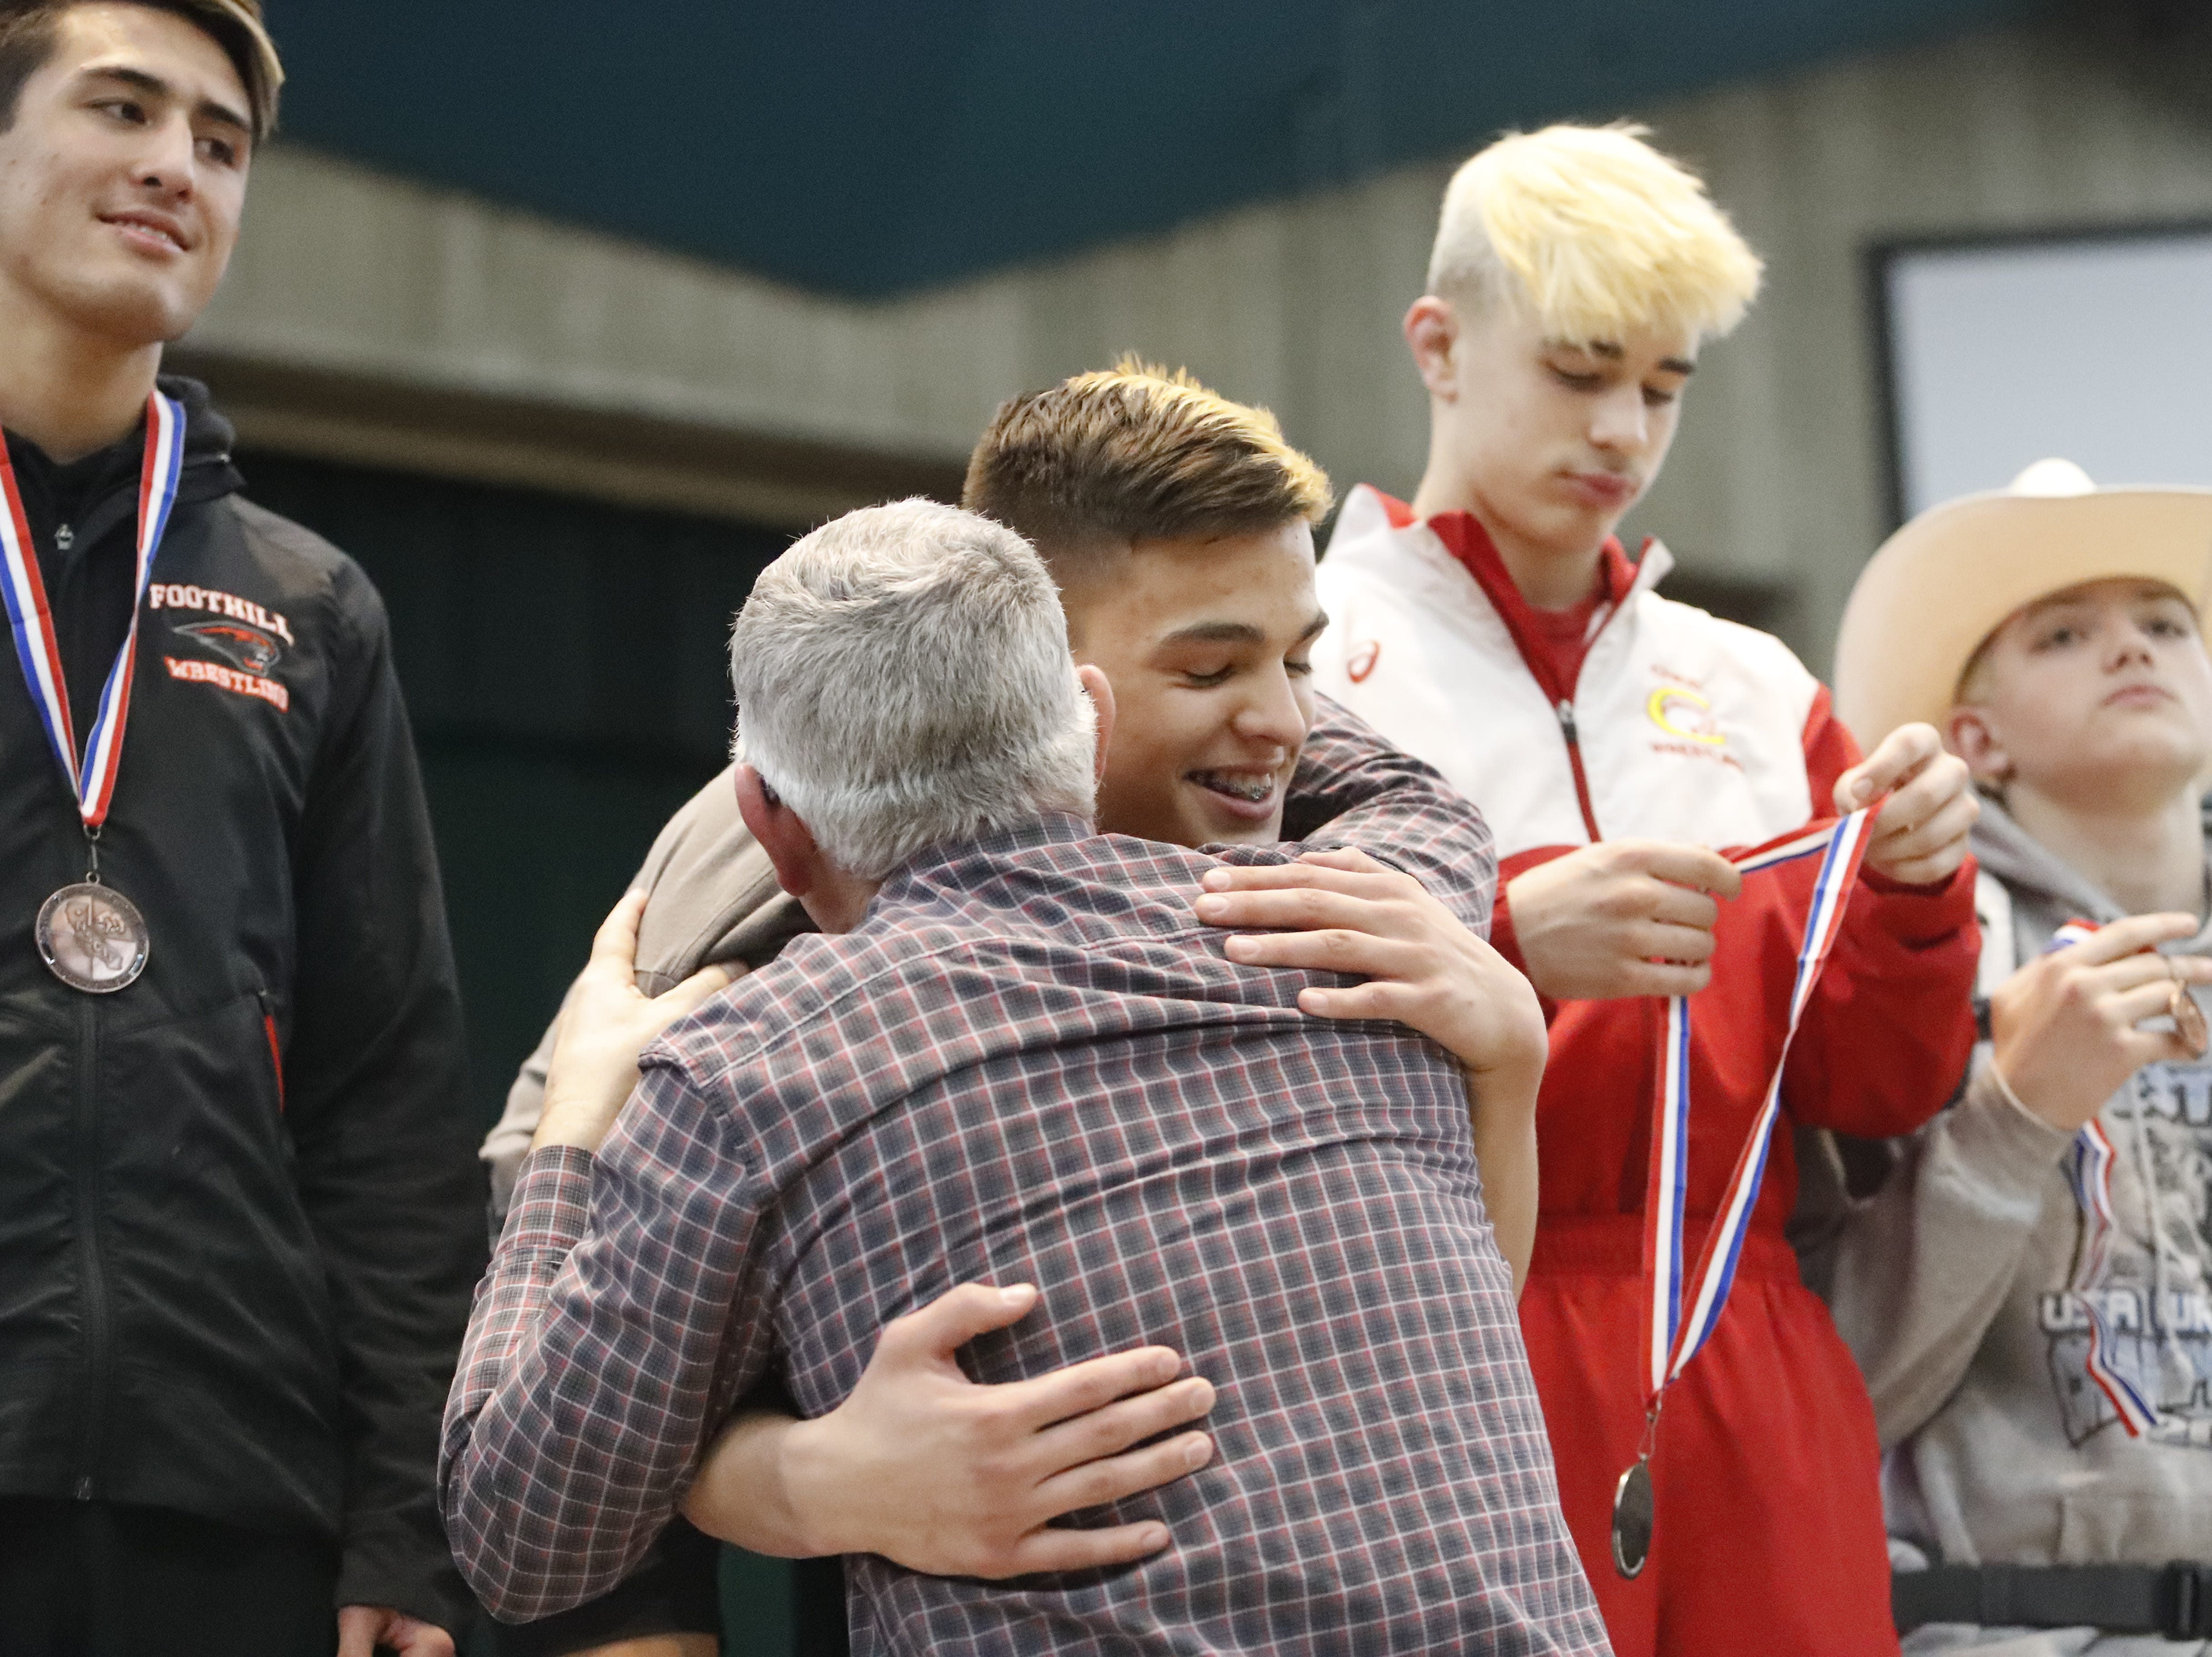 West Valley wrestler Rocky Raby hugs his coach from the podium after winning the 132-pound Northern Section championship on Friday, Feb. 15, at the Redding Civic Auditorium.